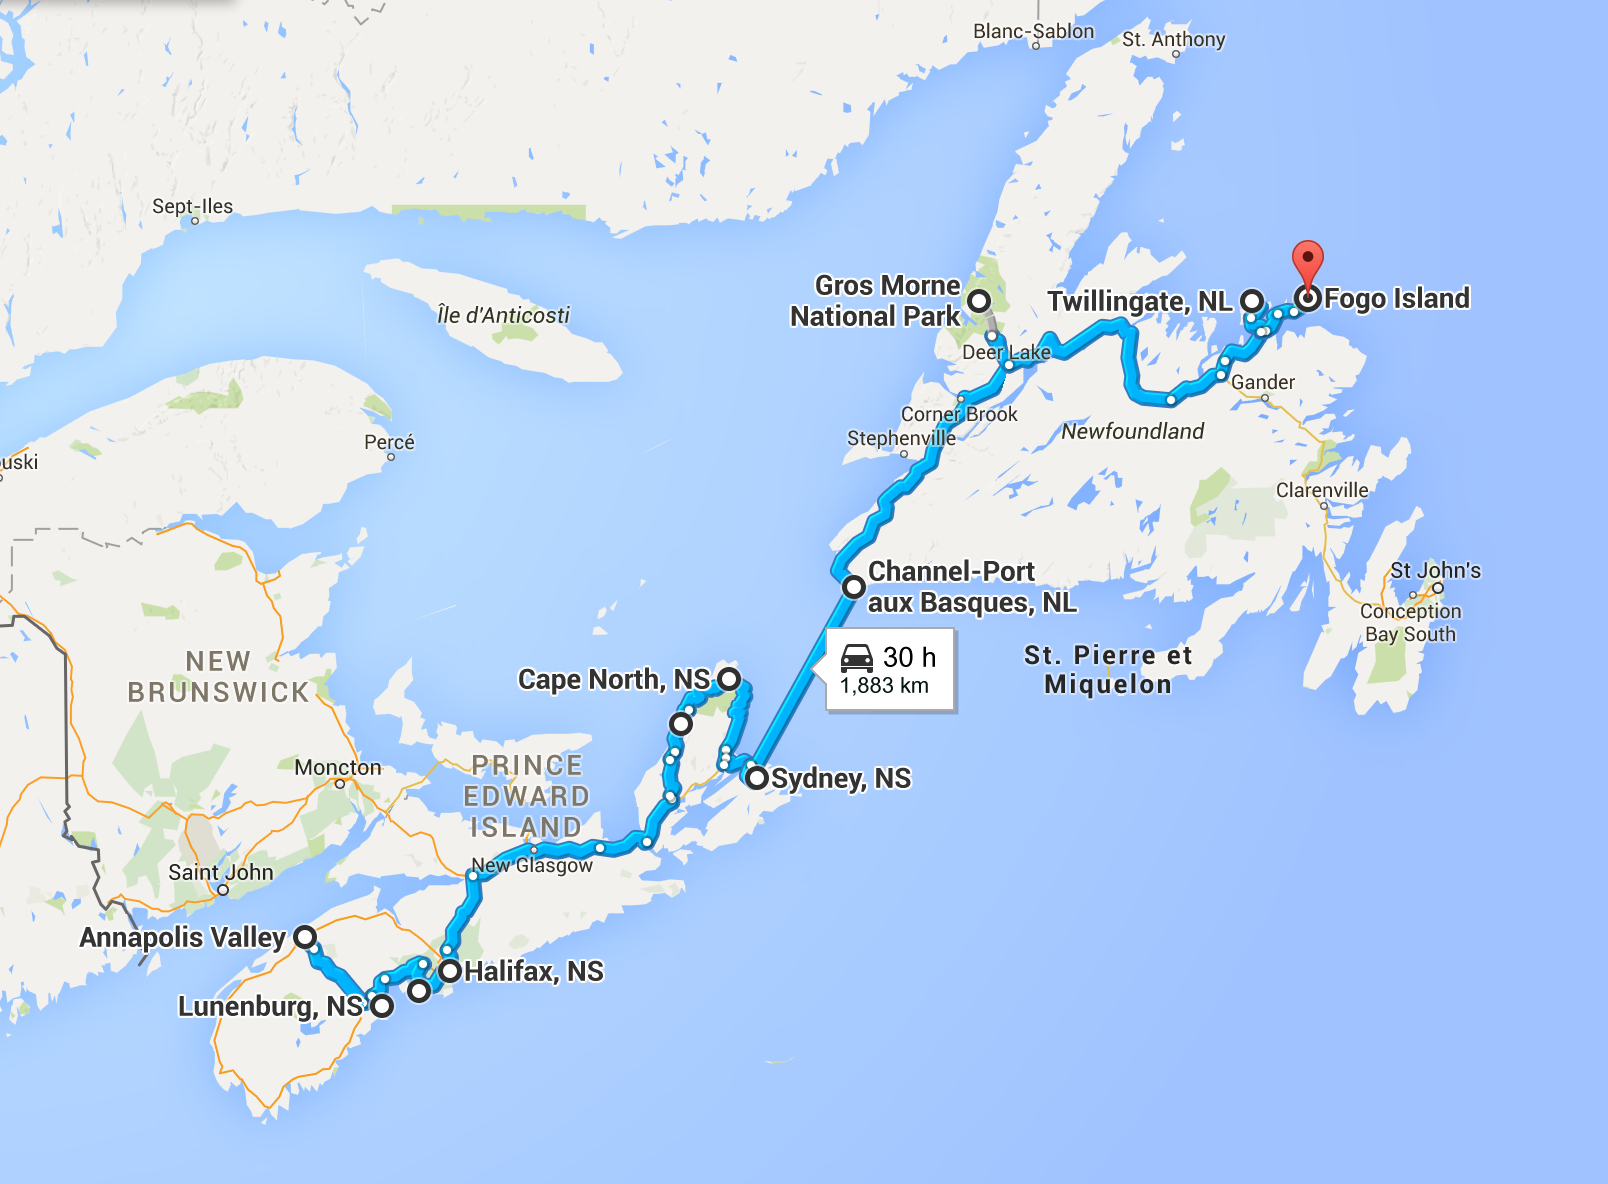 Annapolis Valley to Fogo Island another 30 hours + of beautiful driving.